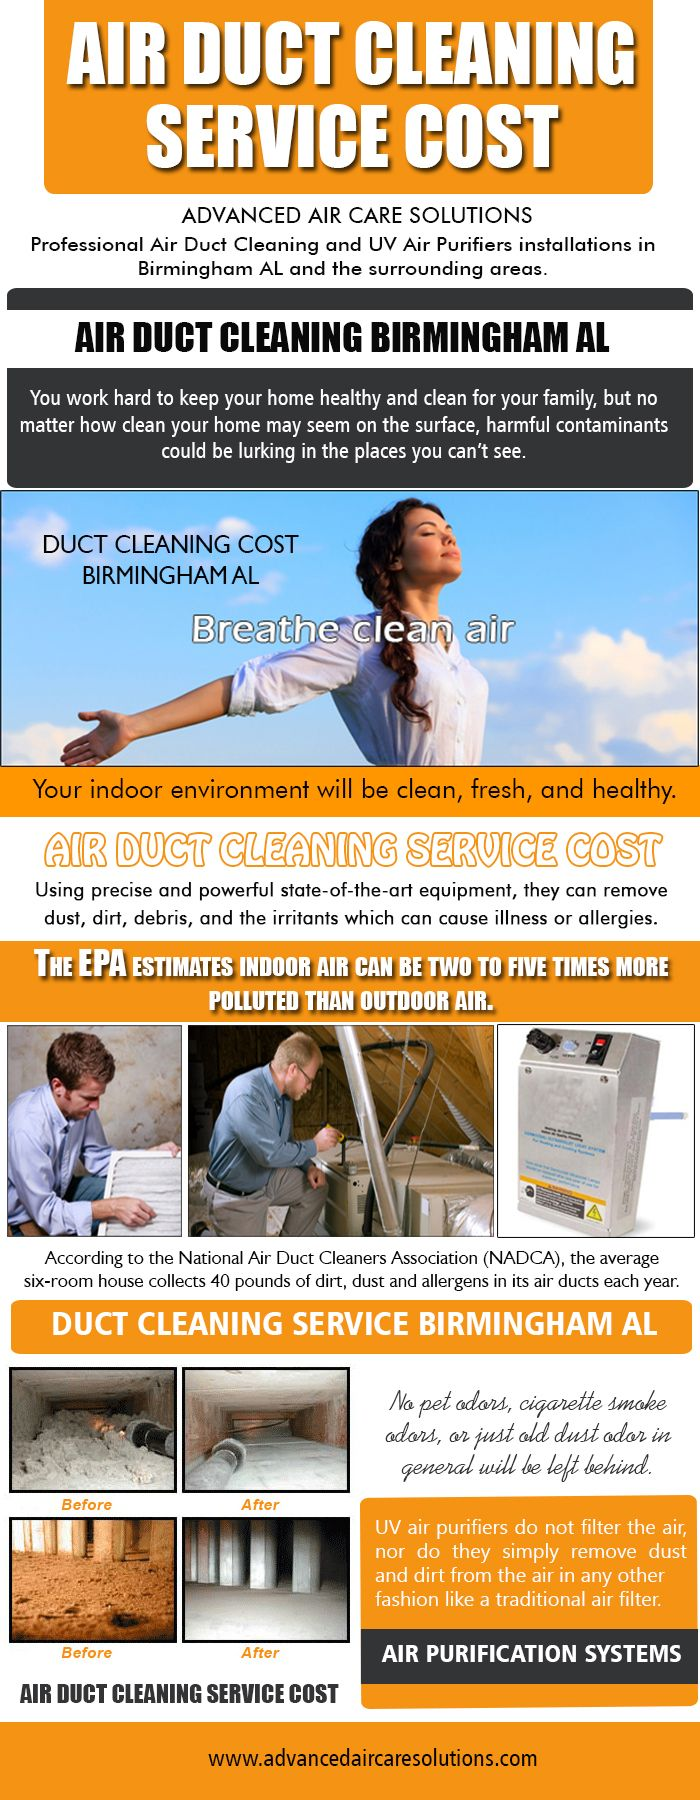 If you are executing these duct cleaning up solutions